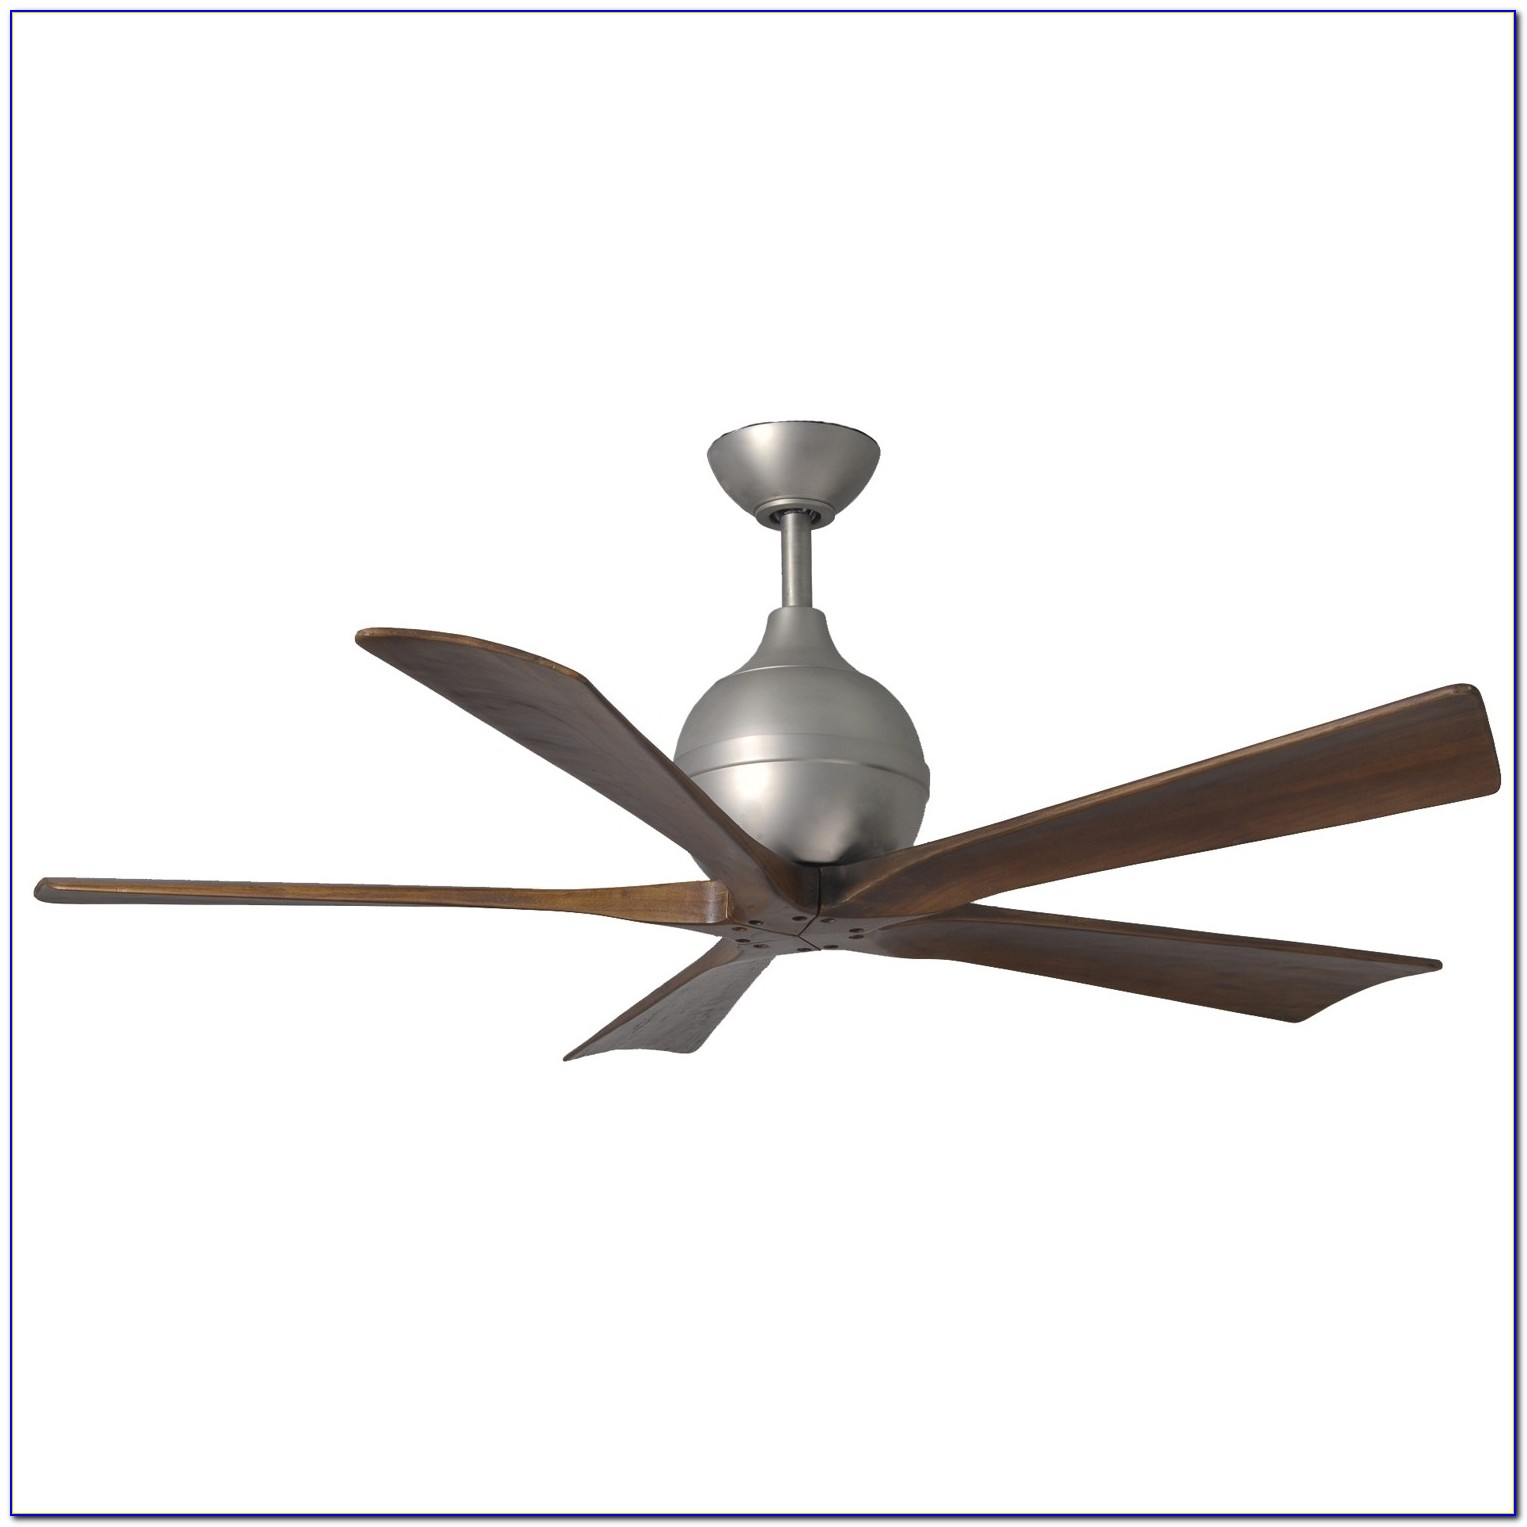 Ceiling Fan Retractable Blades Singapore